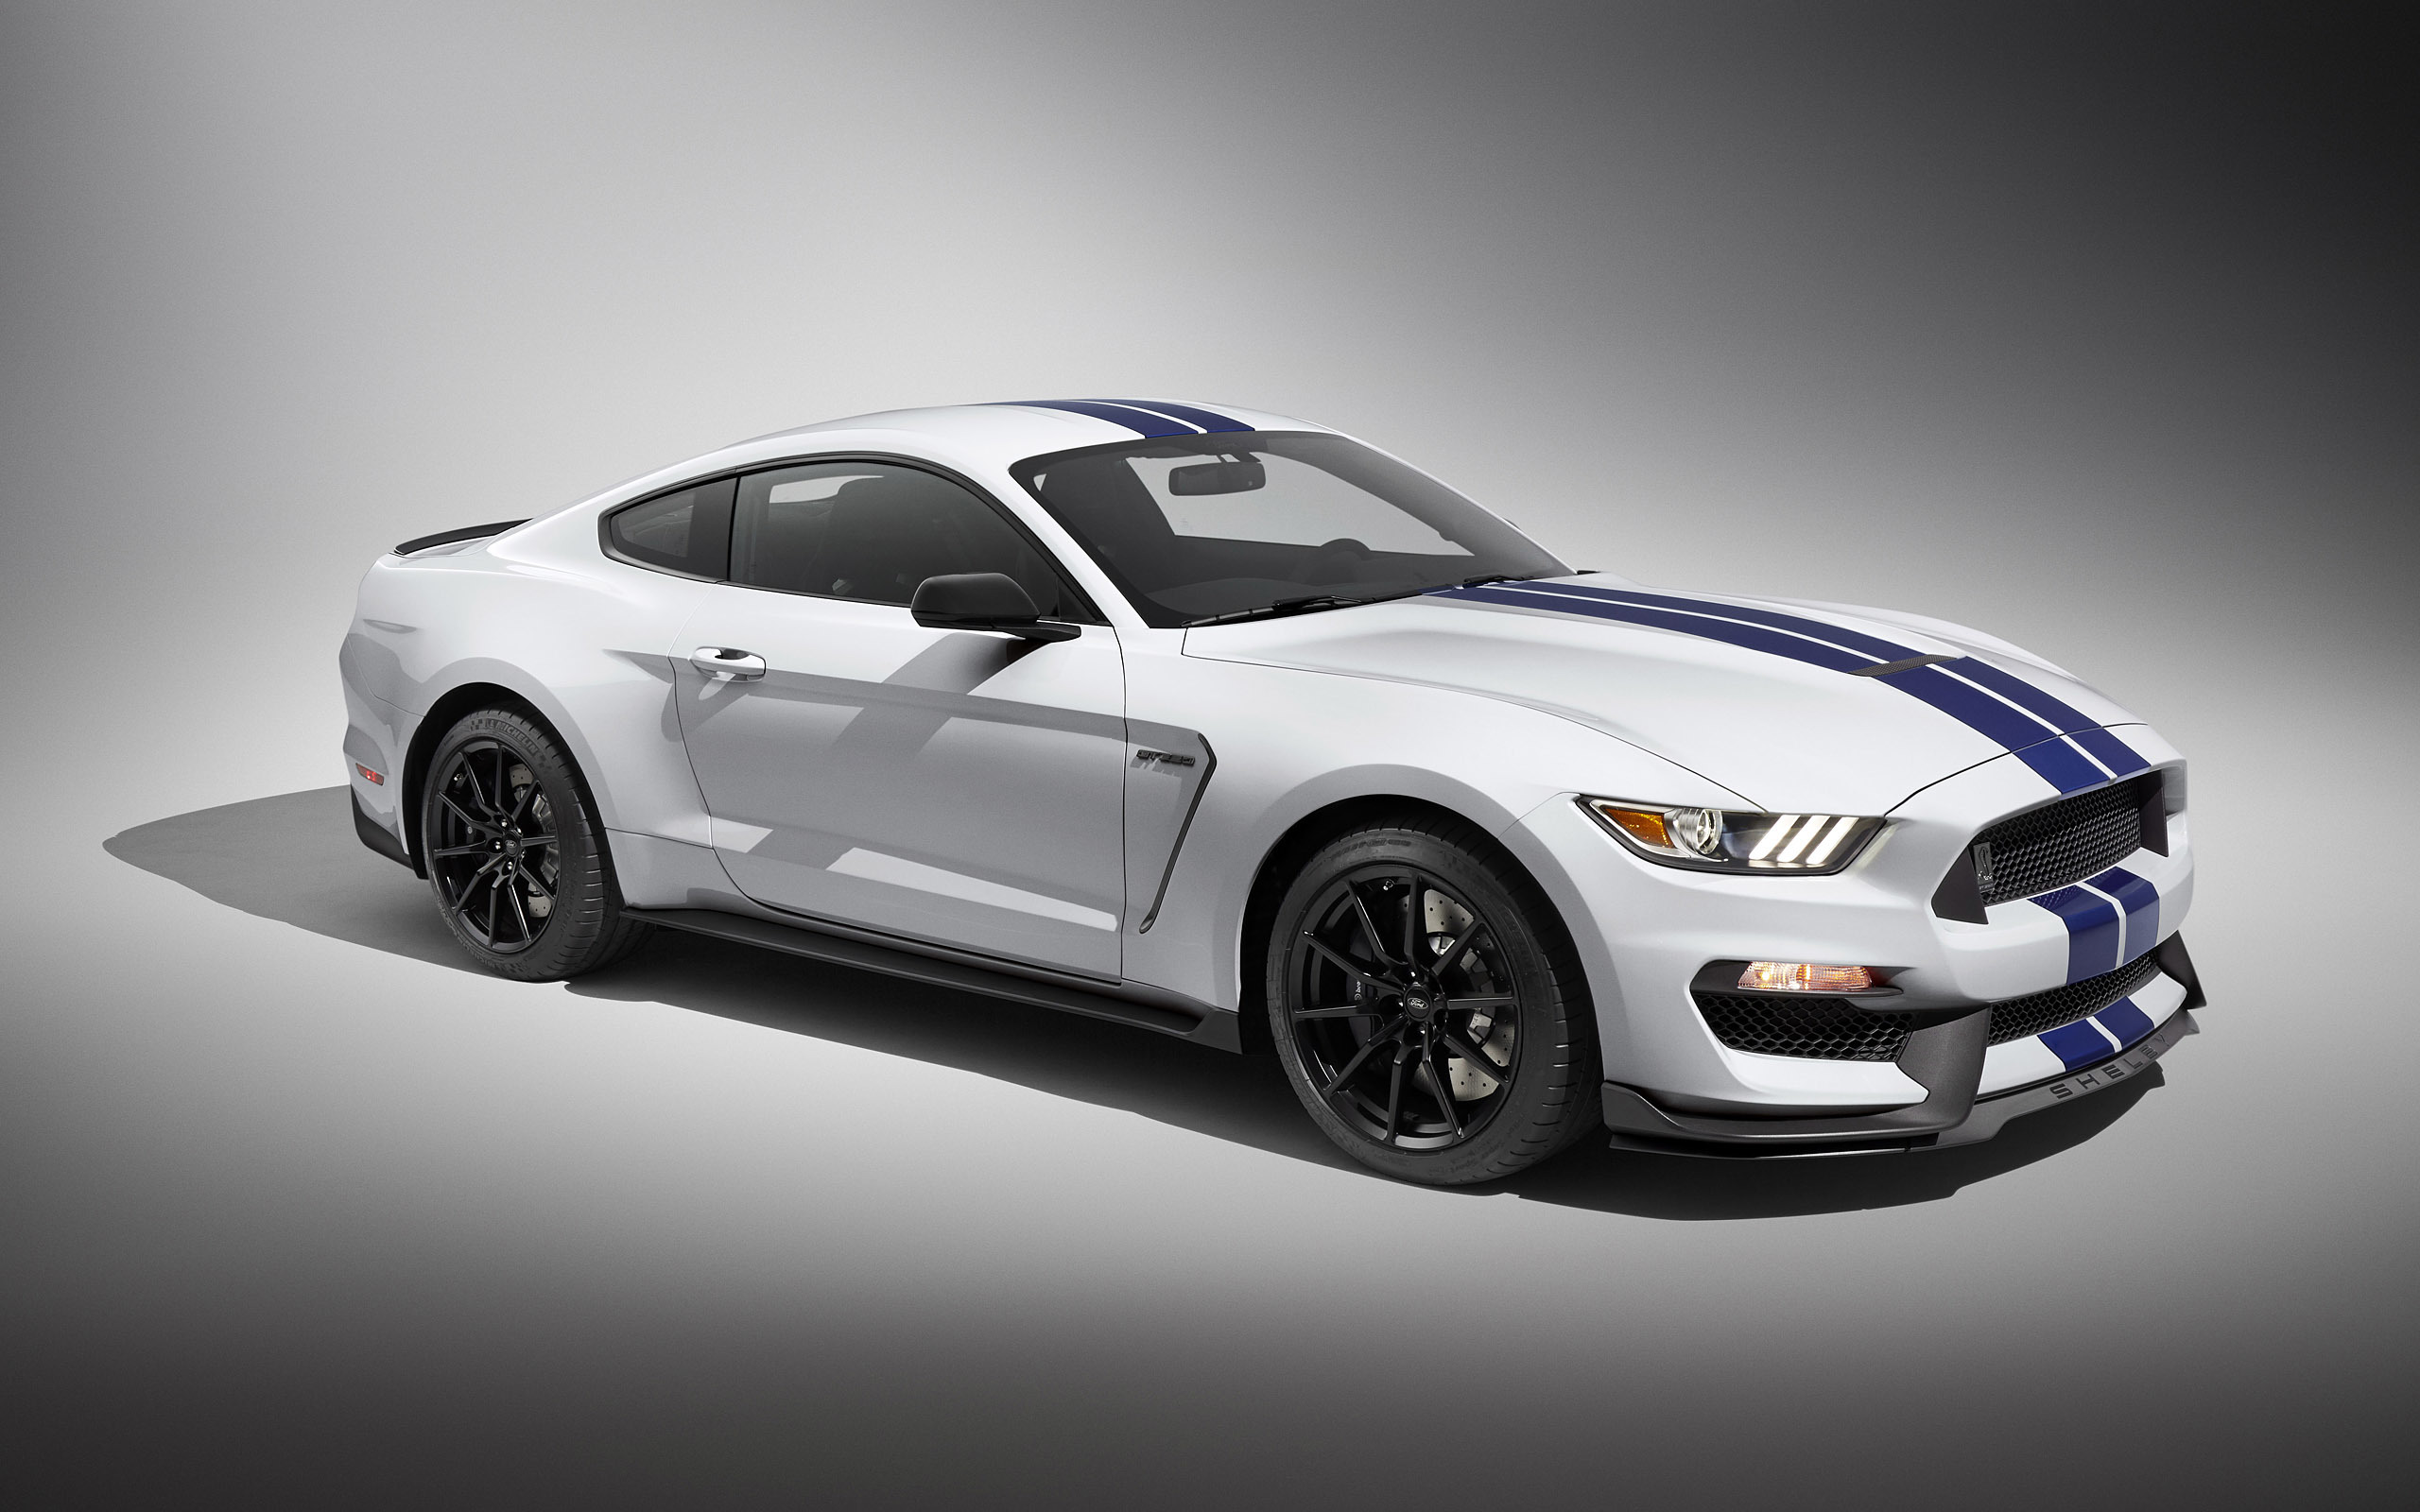 Wallpapers 2016 ford mustang shelby gt350   car pictures and 2560x1600